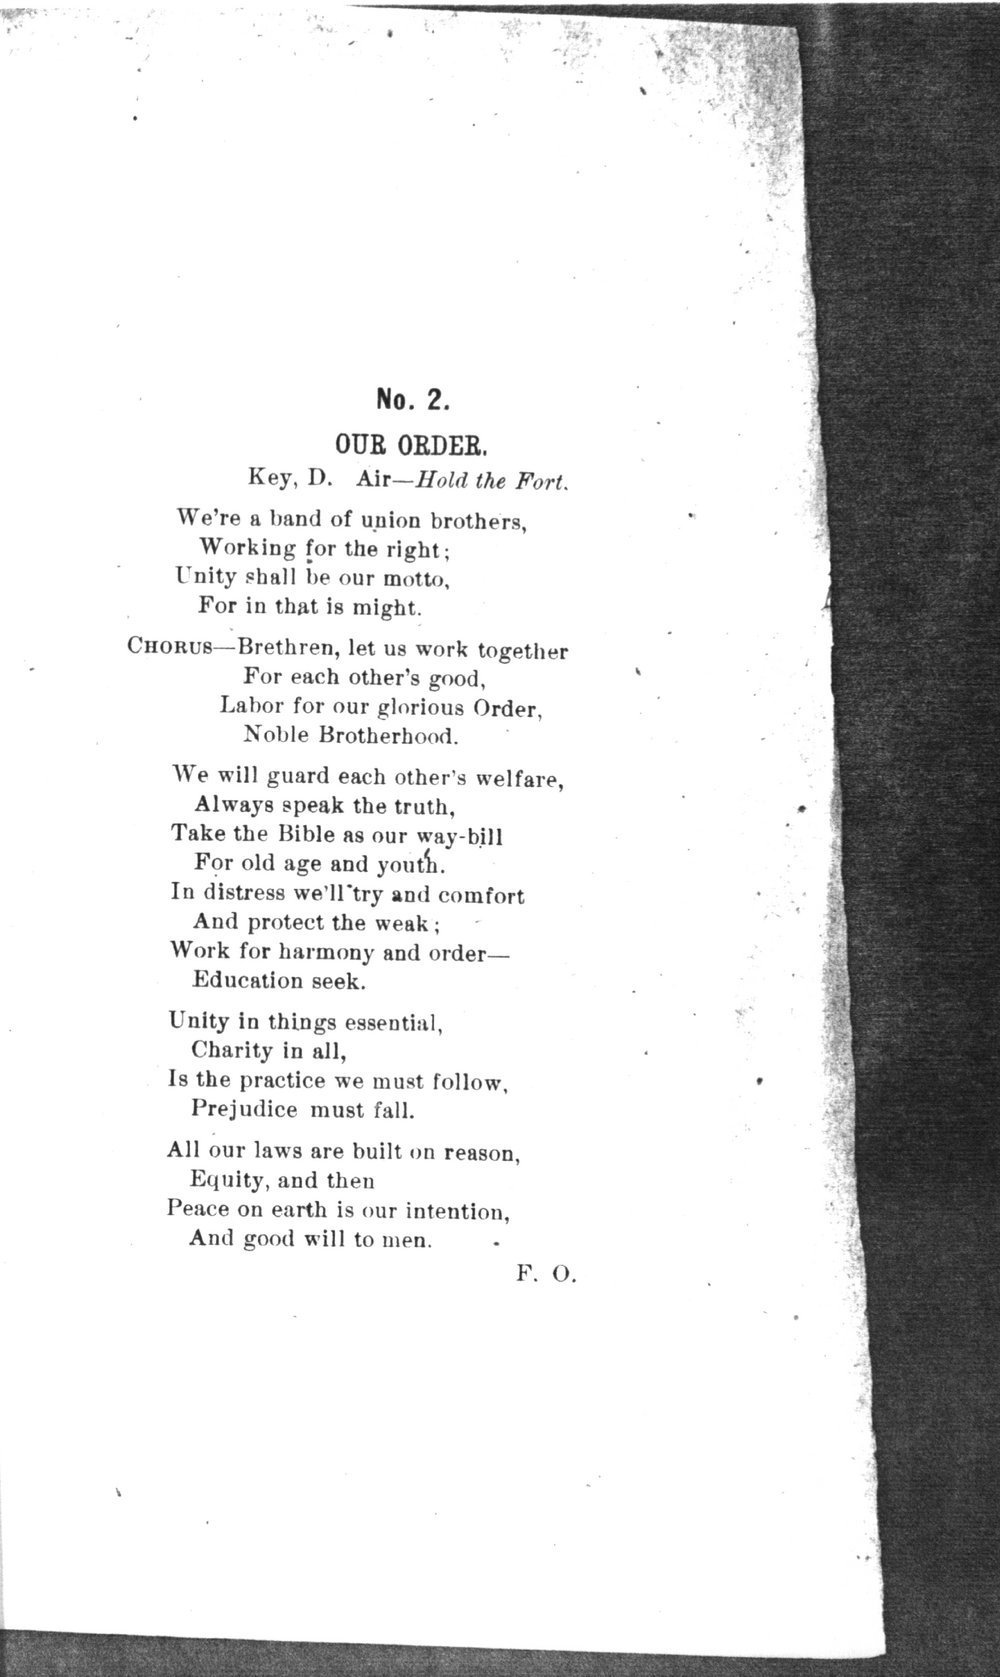 The mite:  Farmers' and Laborers' Union songs for national, state, county and subordinate unions - No. 2